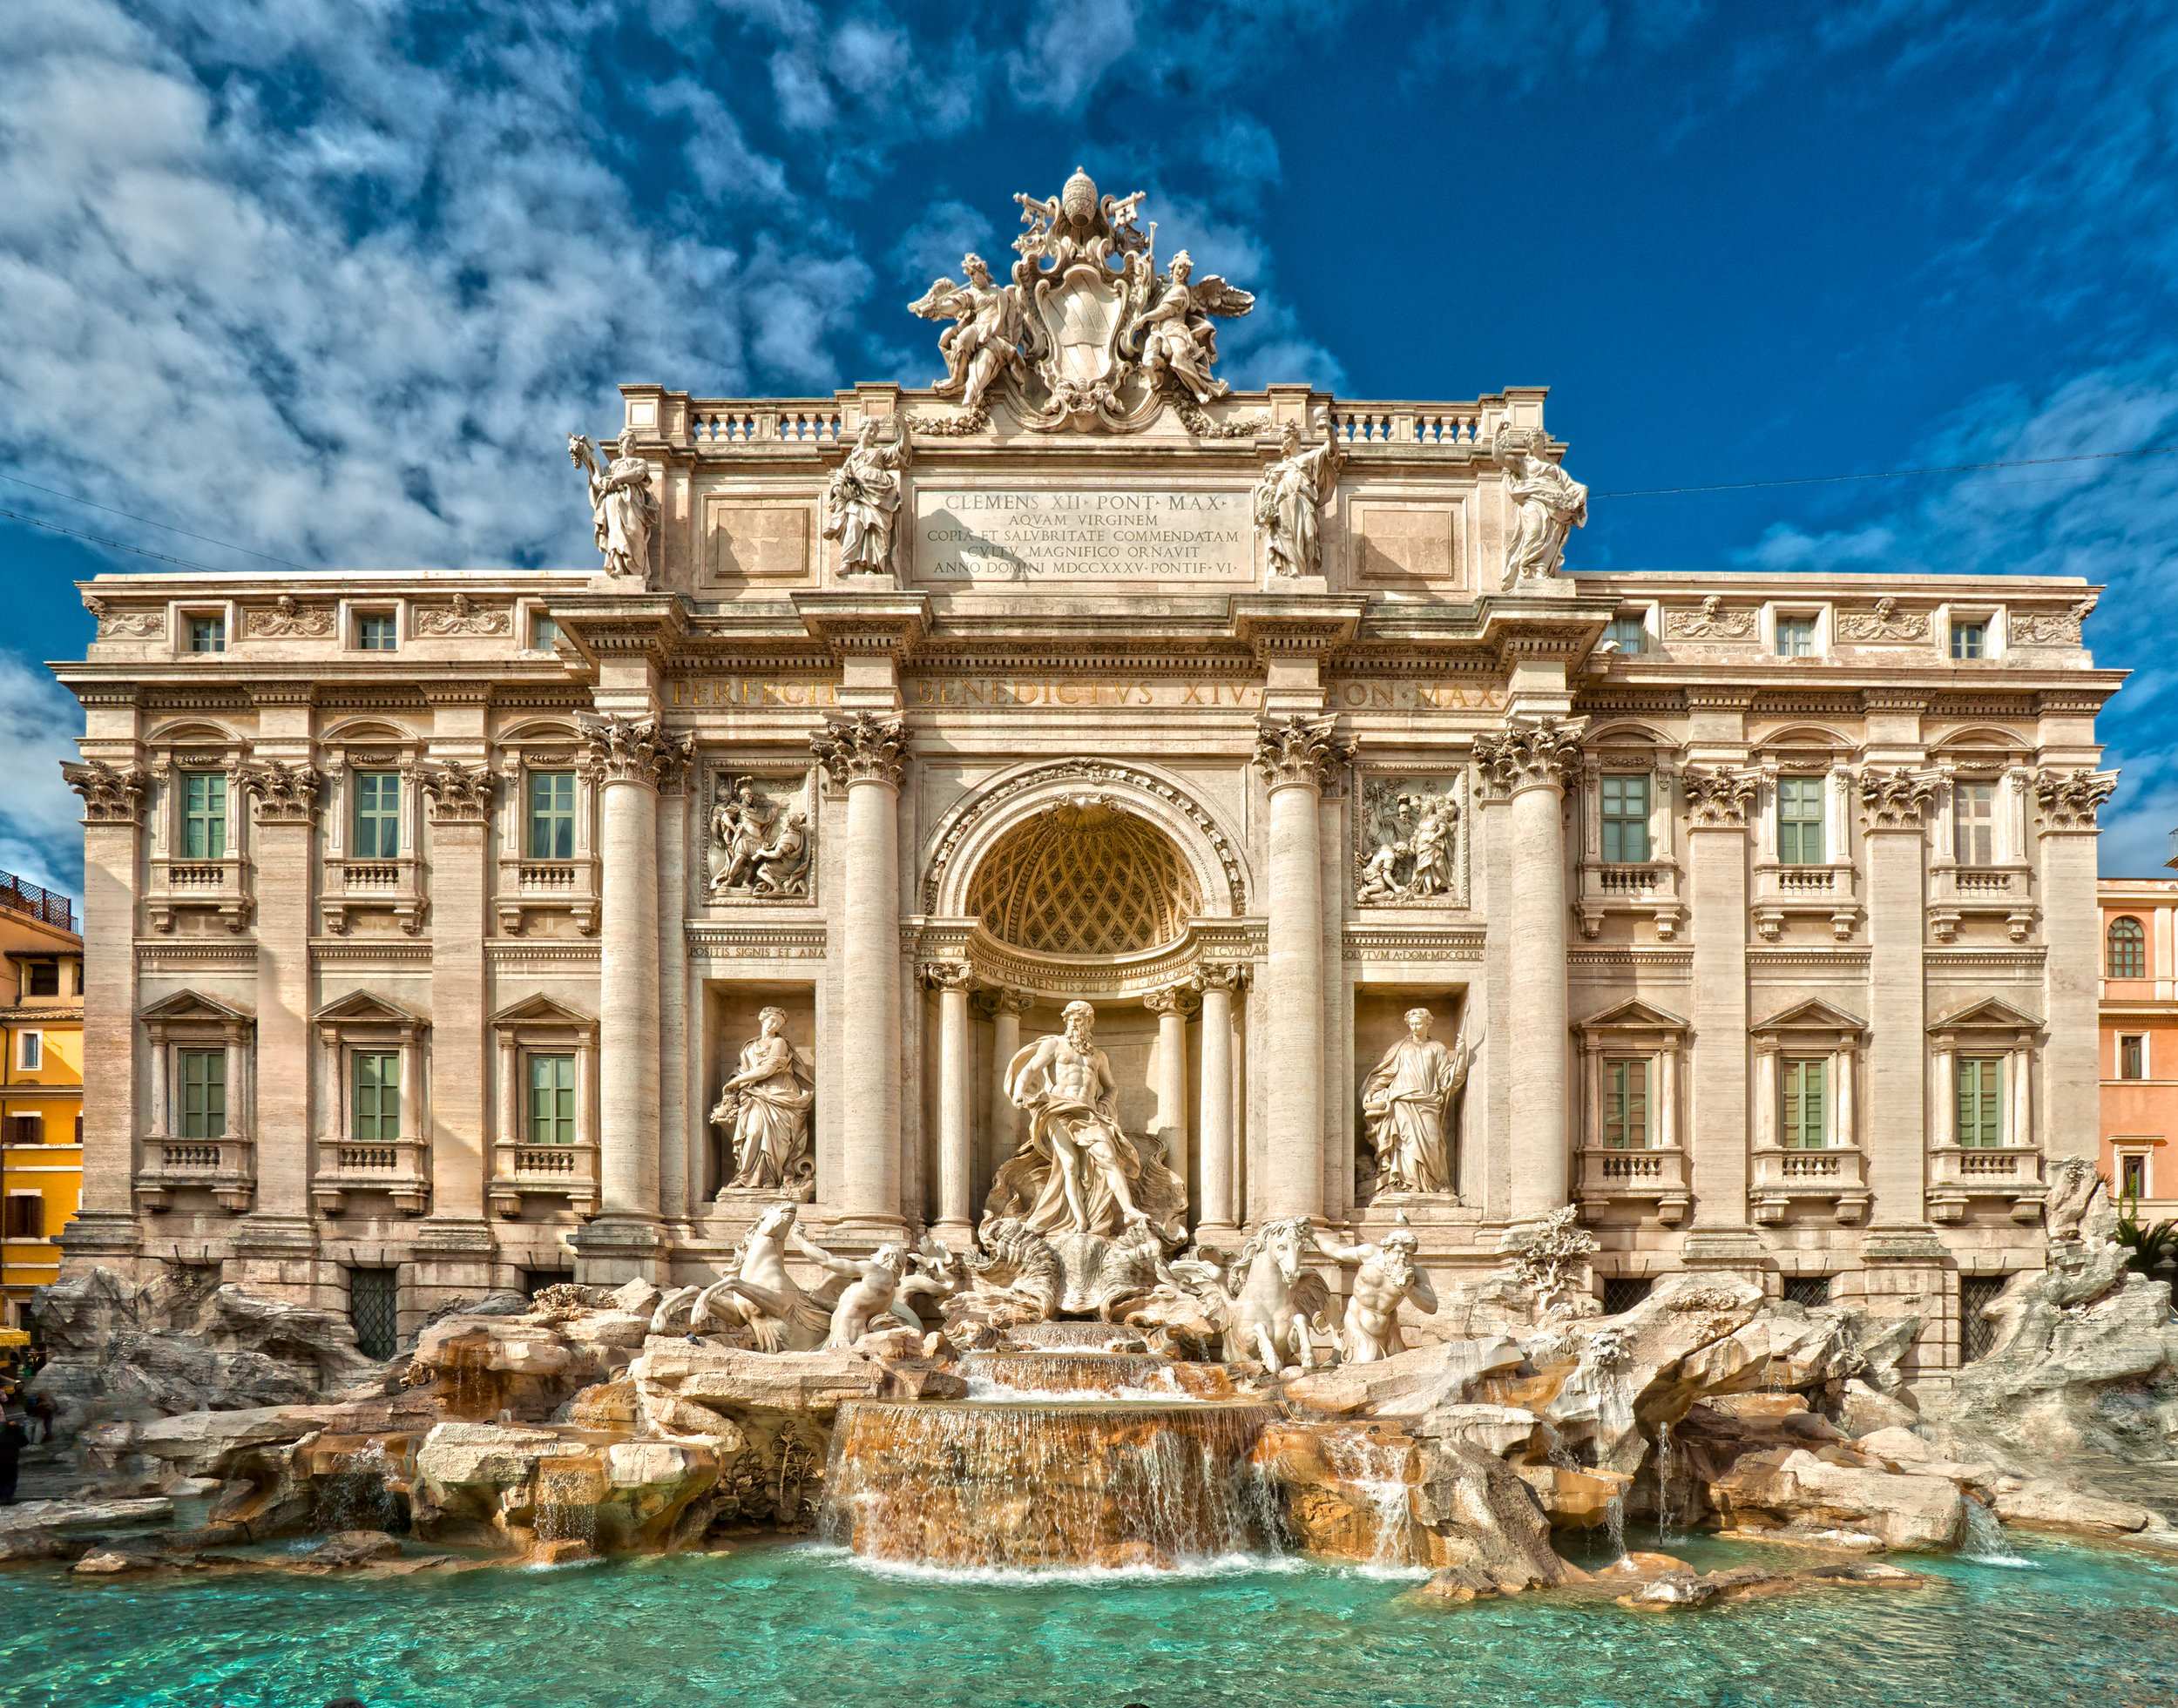 Aug 7:Explore Rome - Spend the day adjusting to the time change while exploring Rome and it's many cafe's, shops and famous sites. Don't miss the Spanish Steps (great for people watching), Trevi Fountain and Piazza Navona!